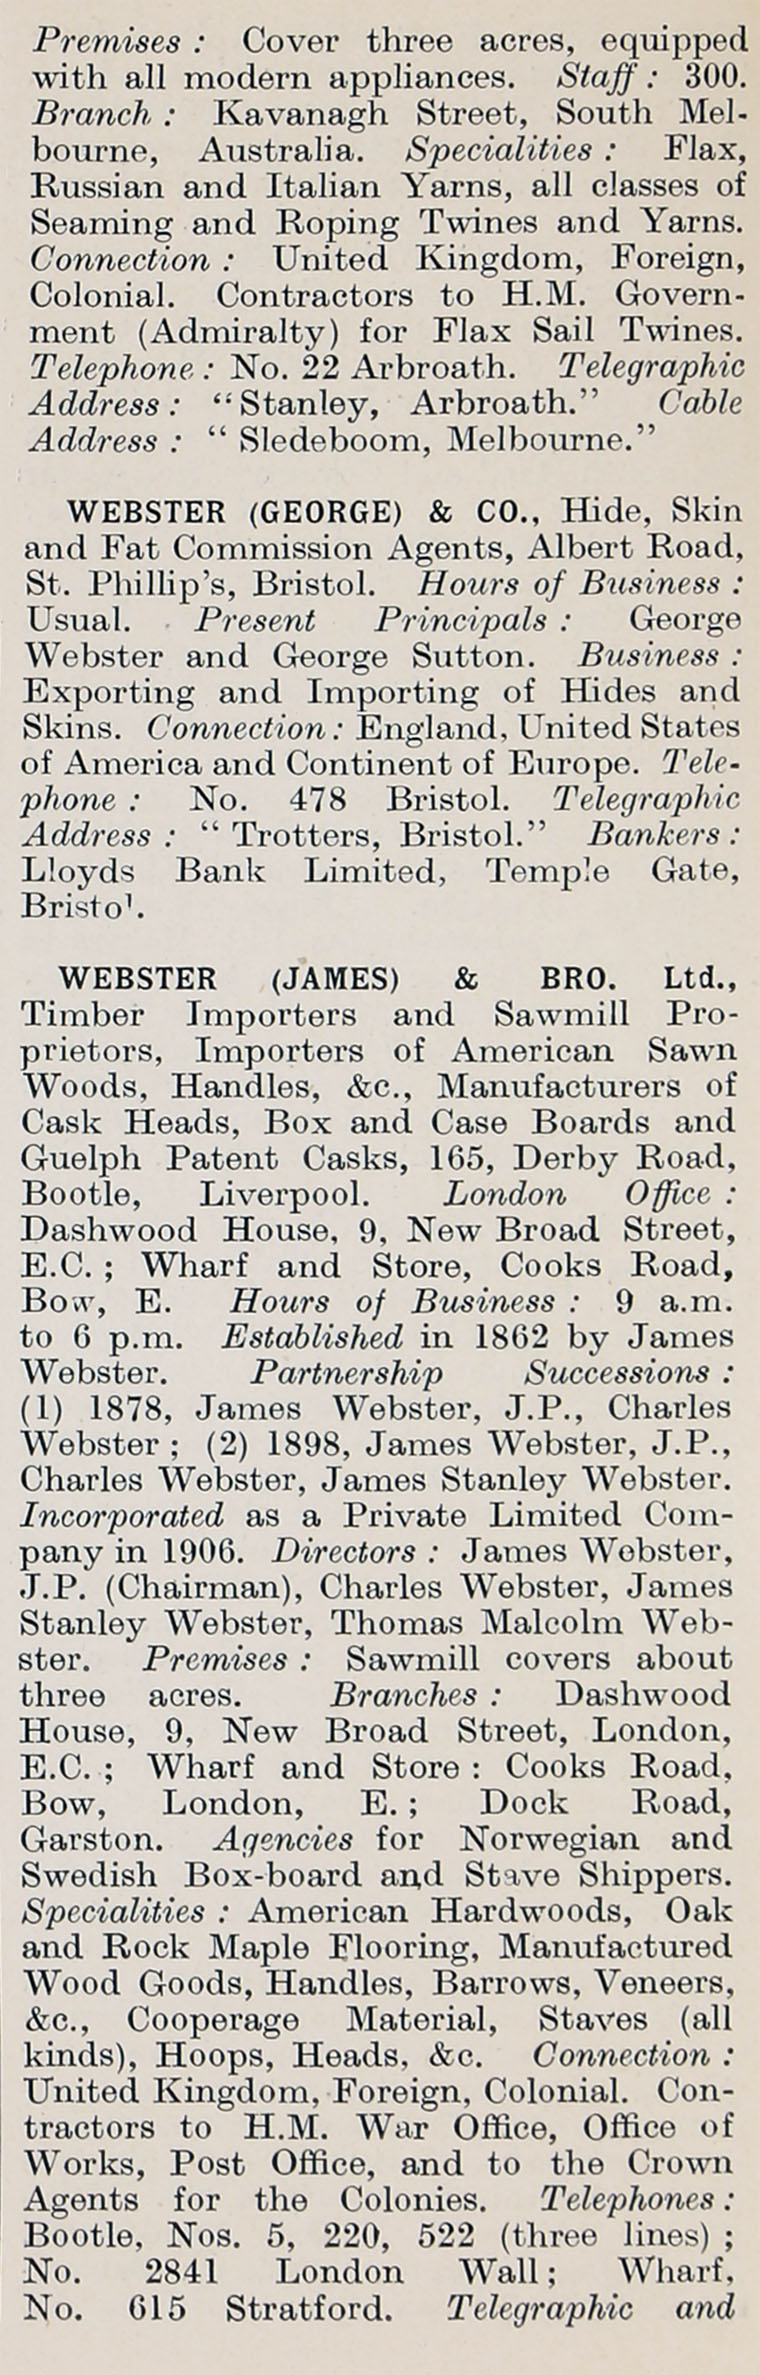 1914 Who's Who in Business: Company W - Graces Guide